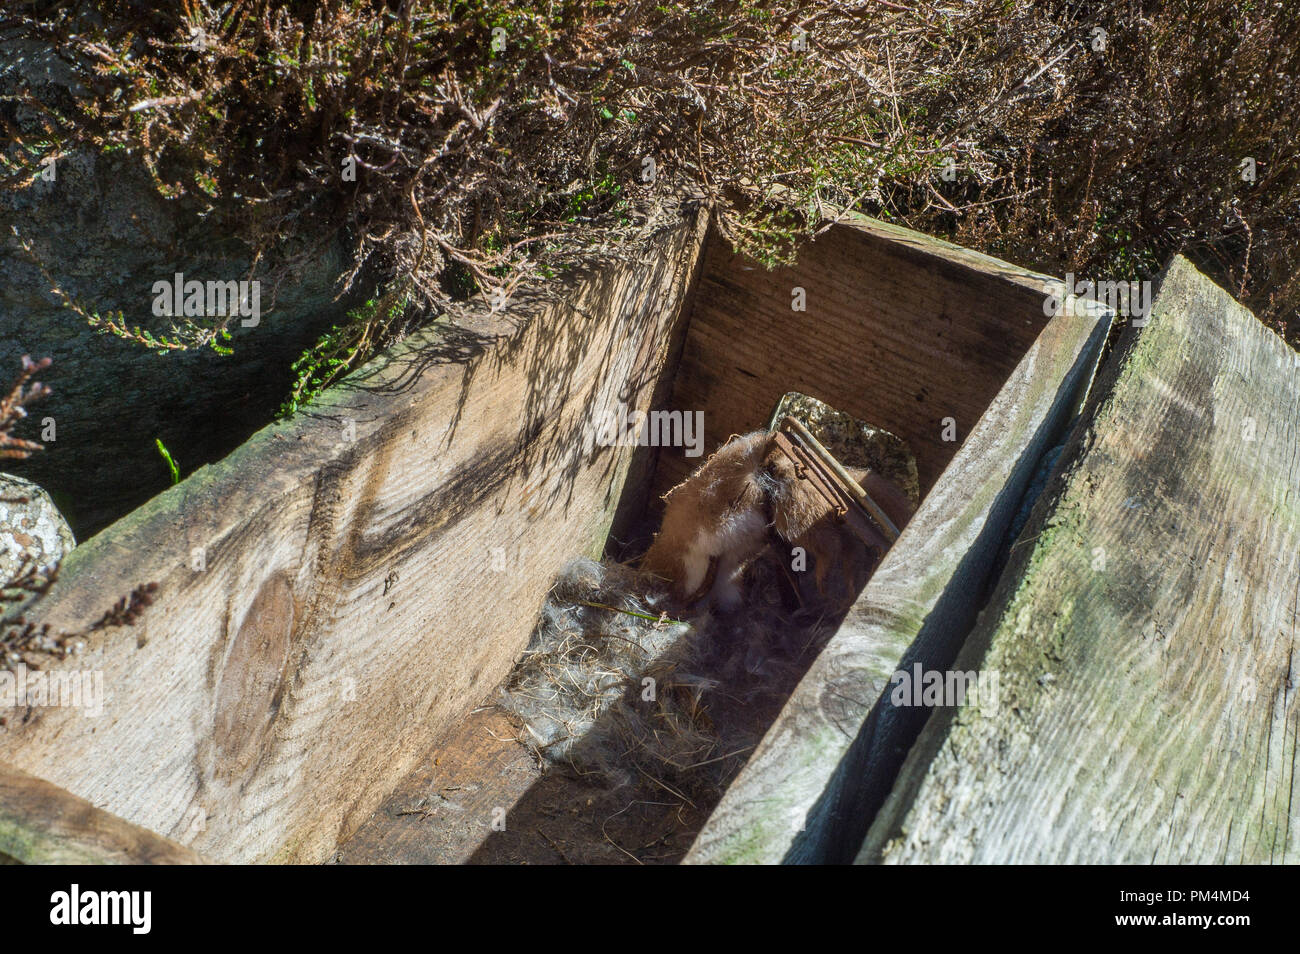 Stoat Caught In Fenn Trap Placed In Wooden Box Tunnel On Hunting